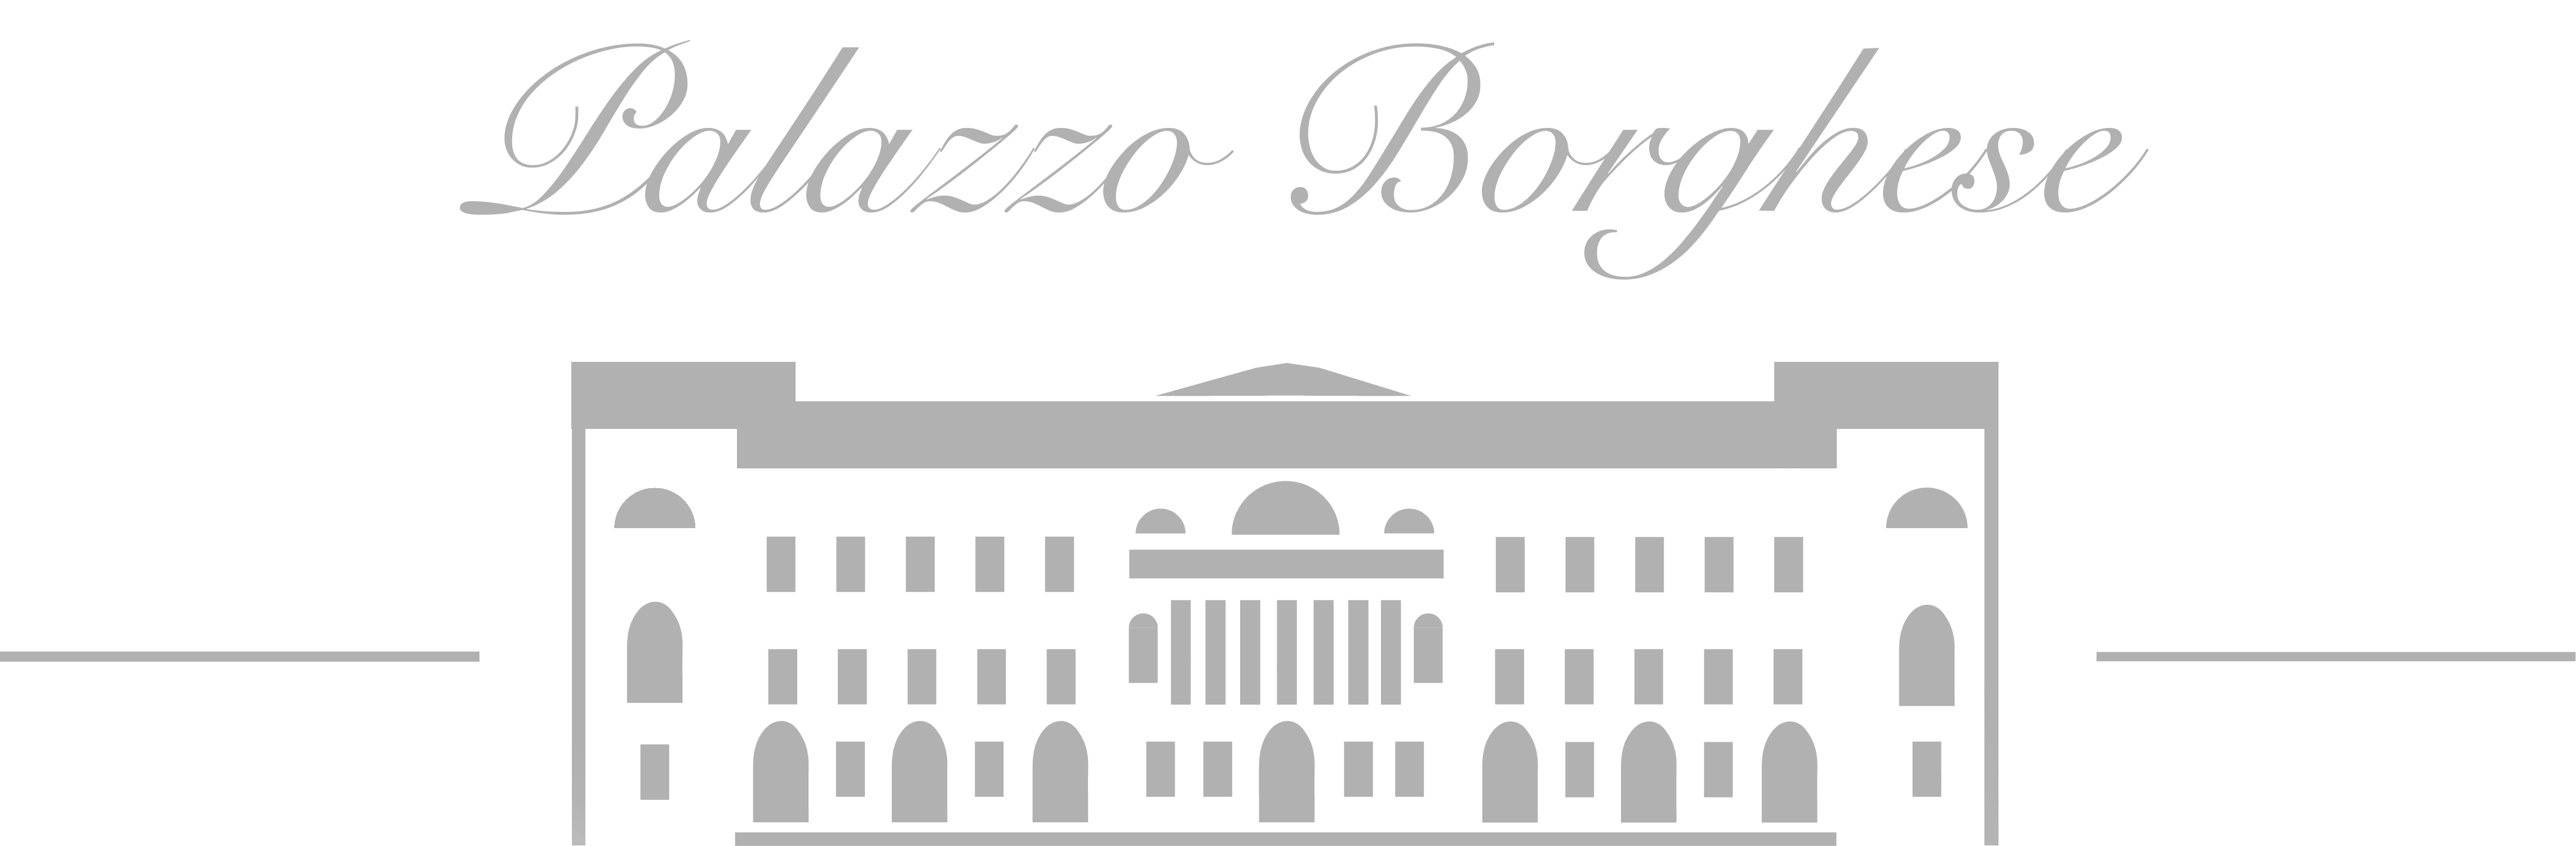 PalazzoBorghese